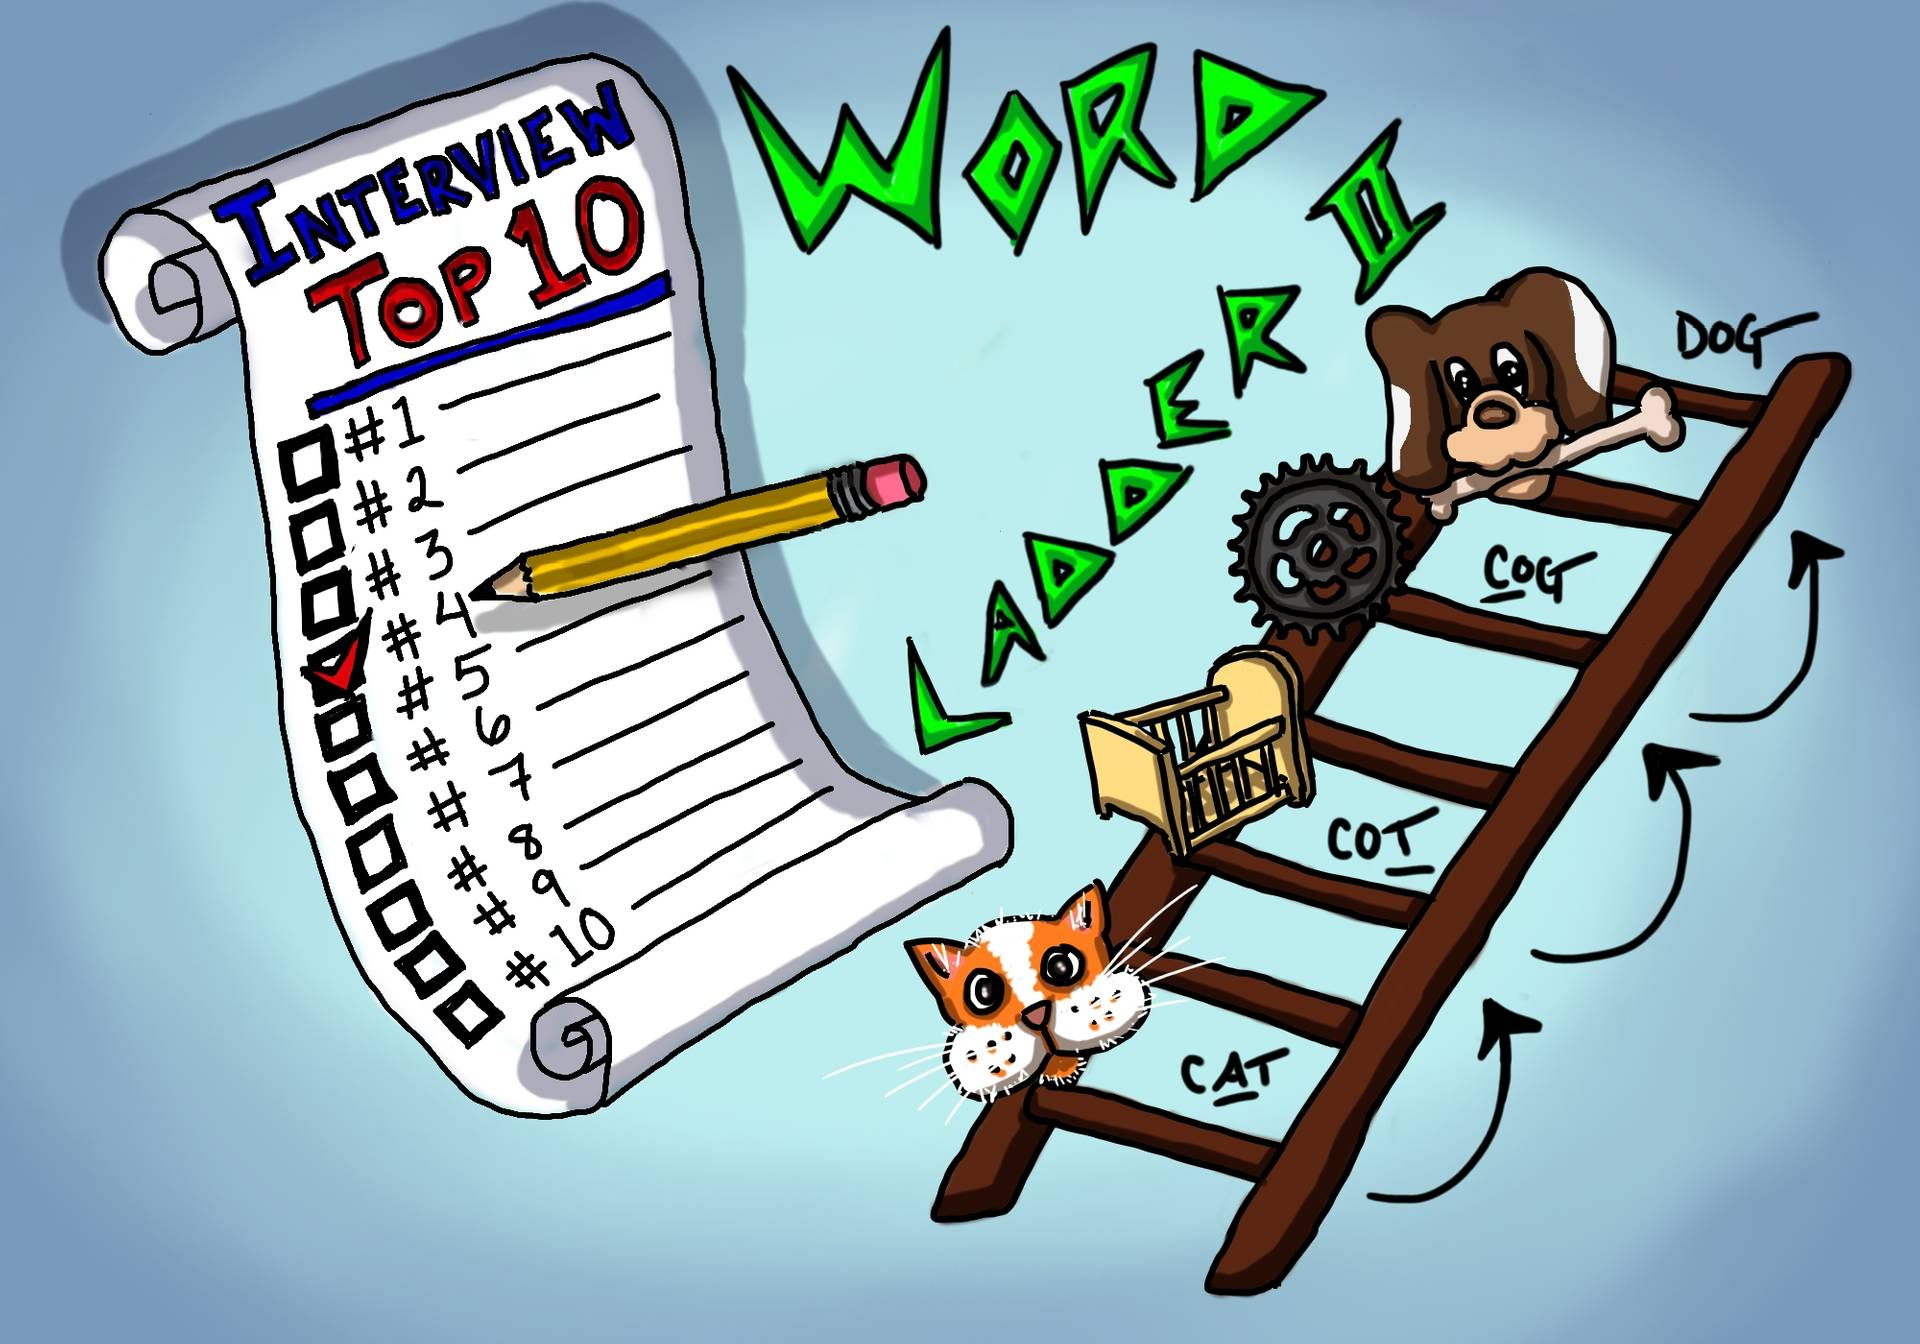 Most Important Interview Questions #4 - Word Ladder II and